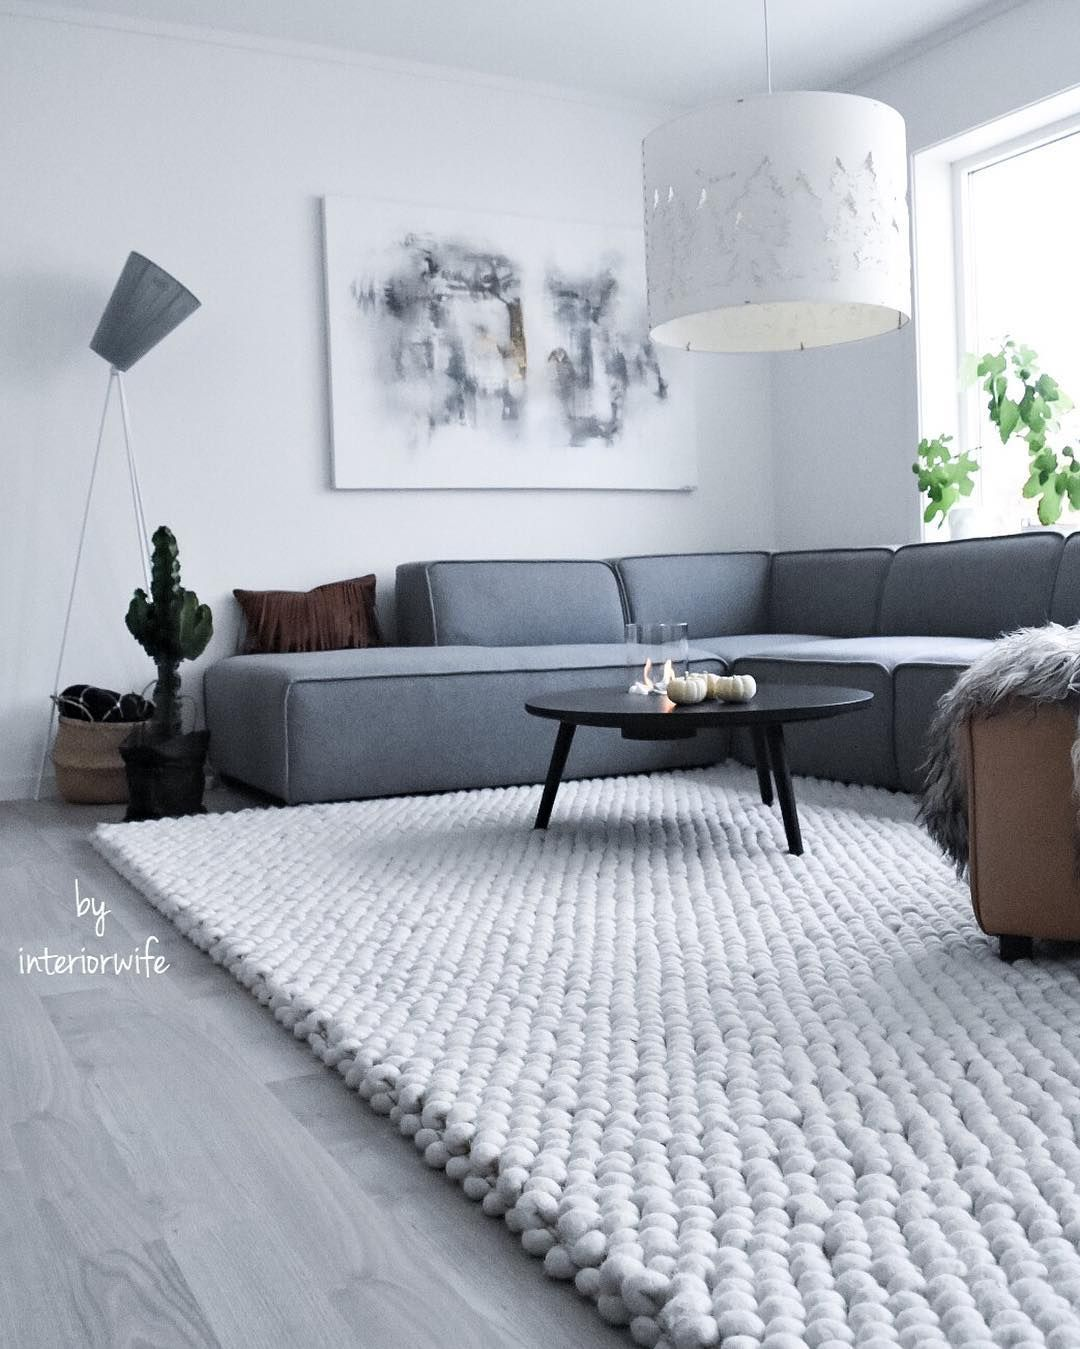 See This Instagram Photo By Interiorwife 1 989 Likes Scandi Corner Sofa Home Decor Living Room Modern